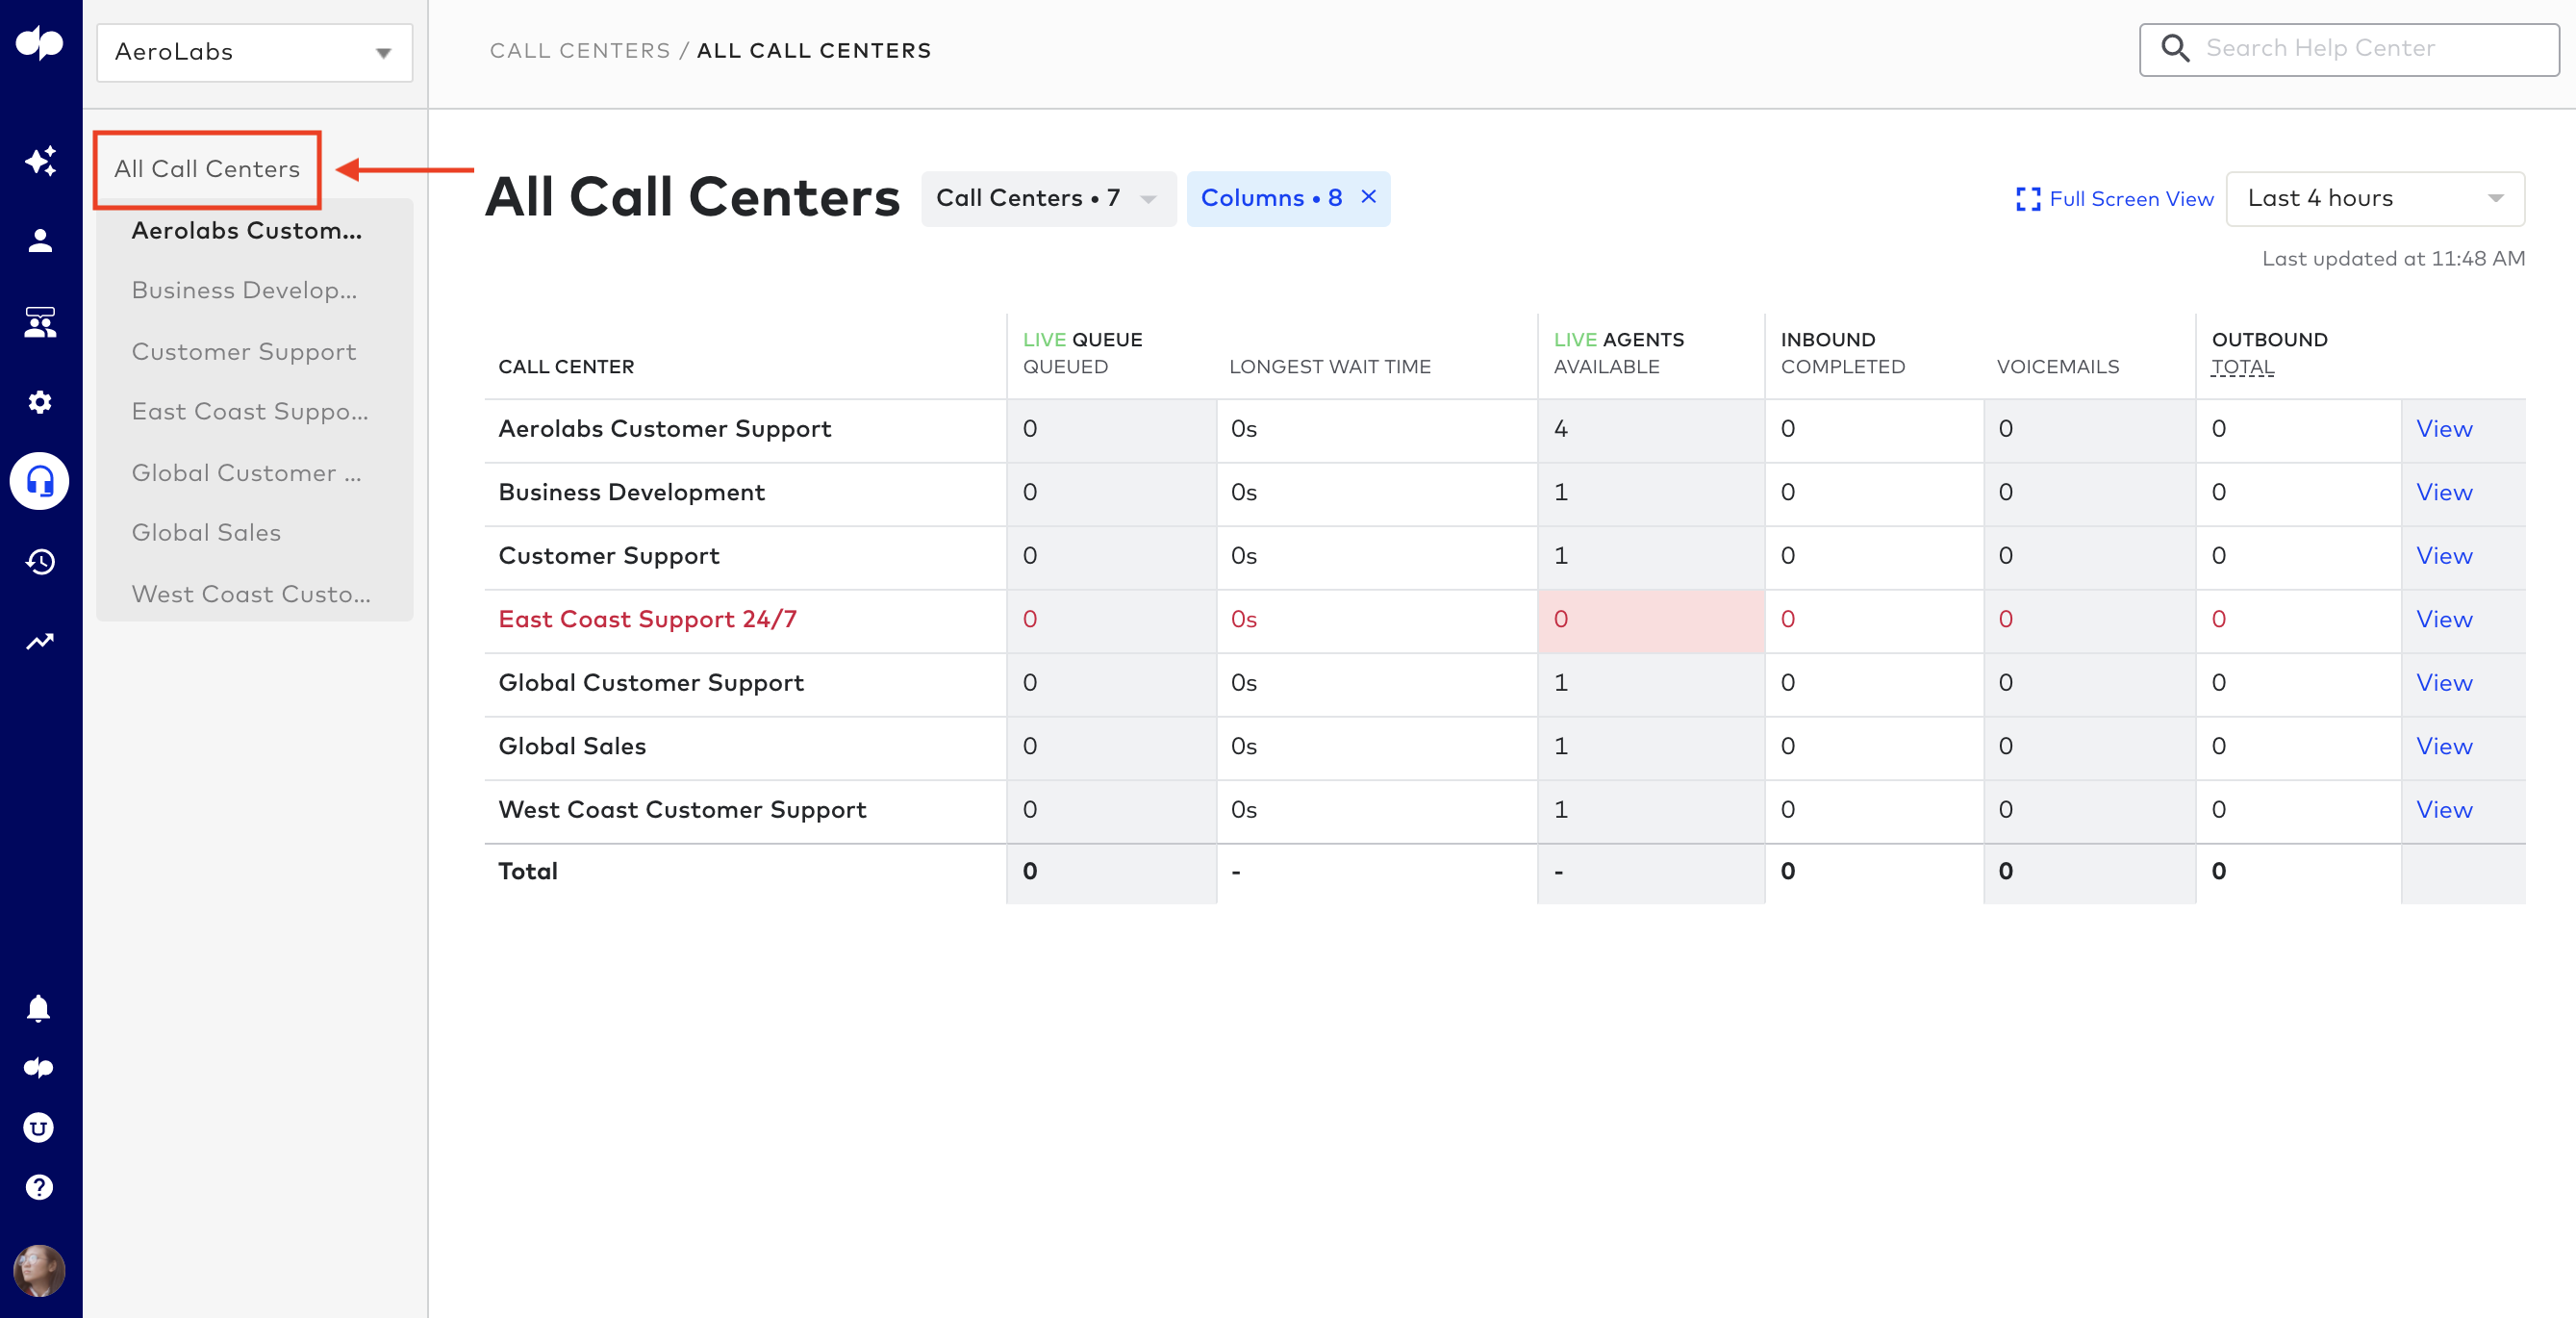 dp-supervisor-dashboard-all-call-centers.png